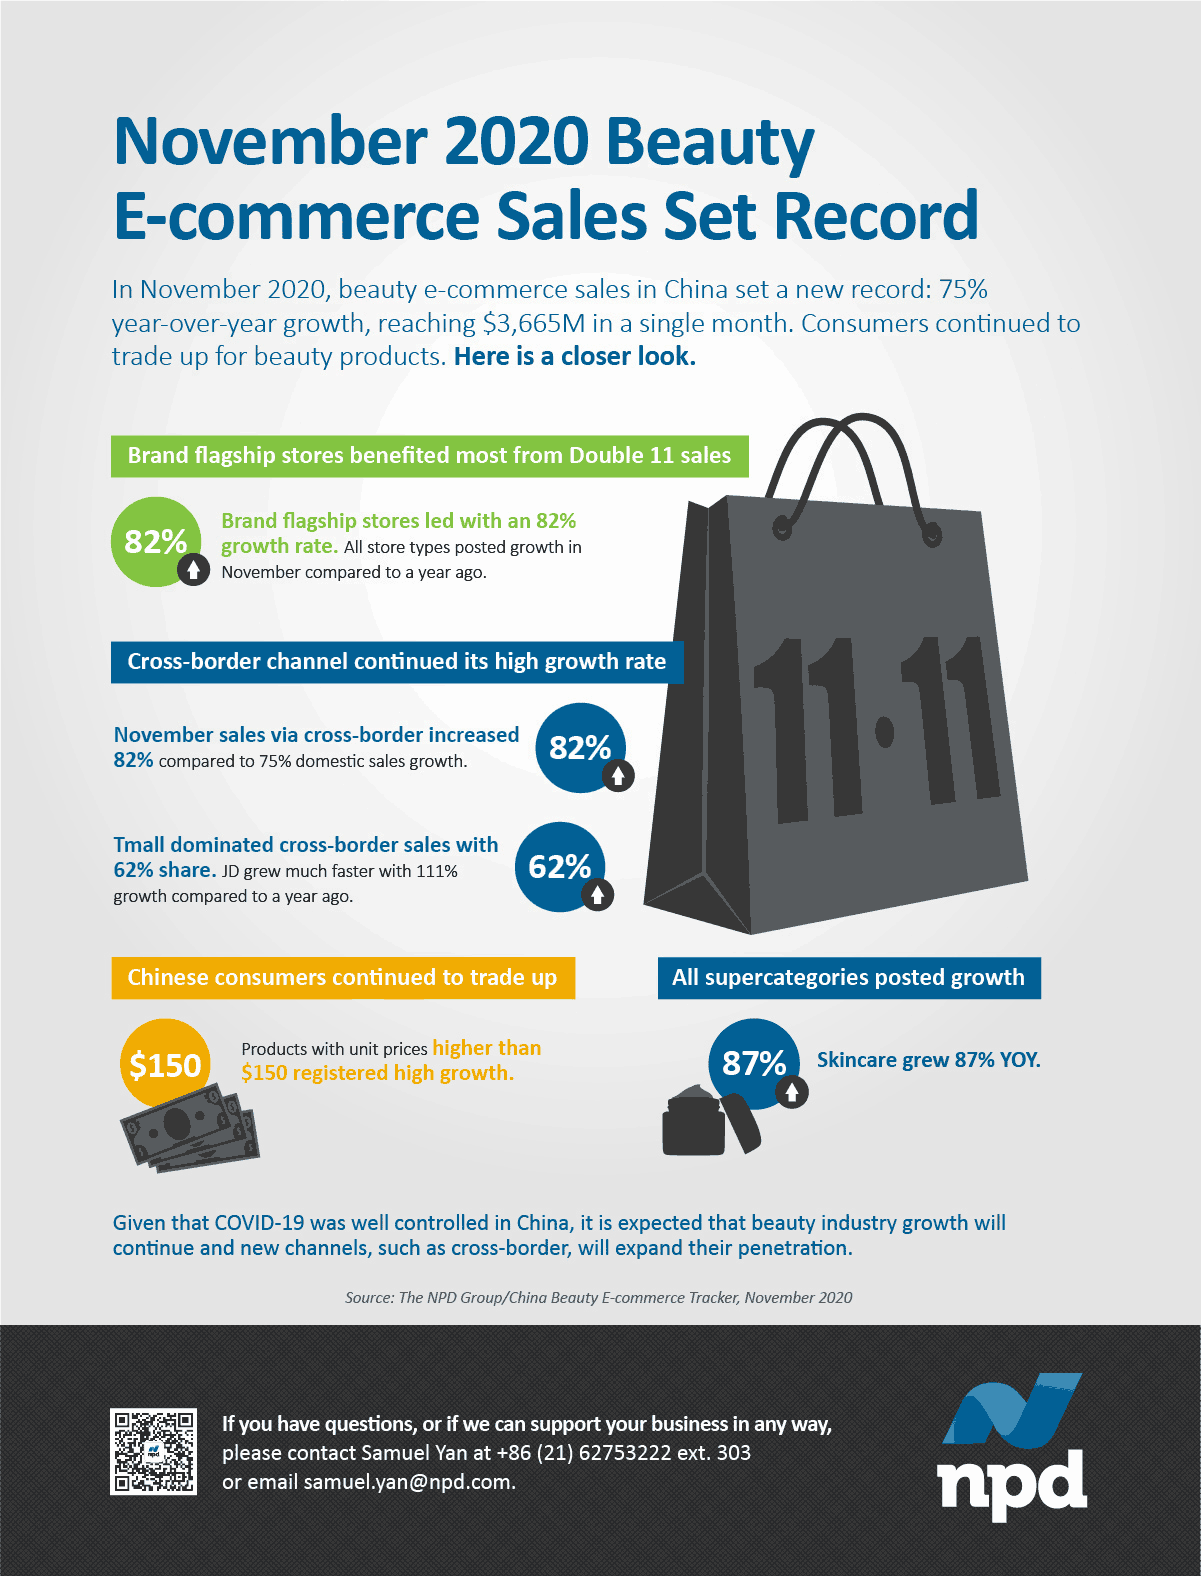 In November 2020, beauty e-commerce sales in China set a new record: 75% year-over-year growth, reaching $3,665M in a single month. Consumers continued to trade up for beauty products.